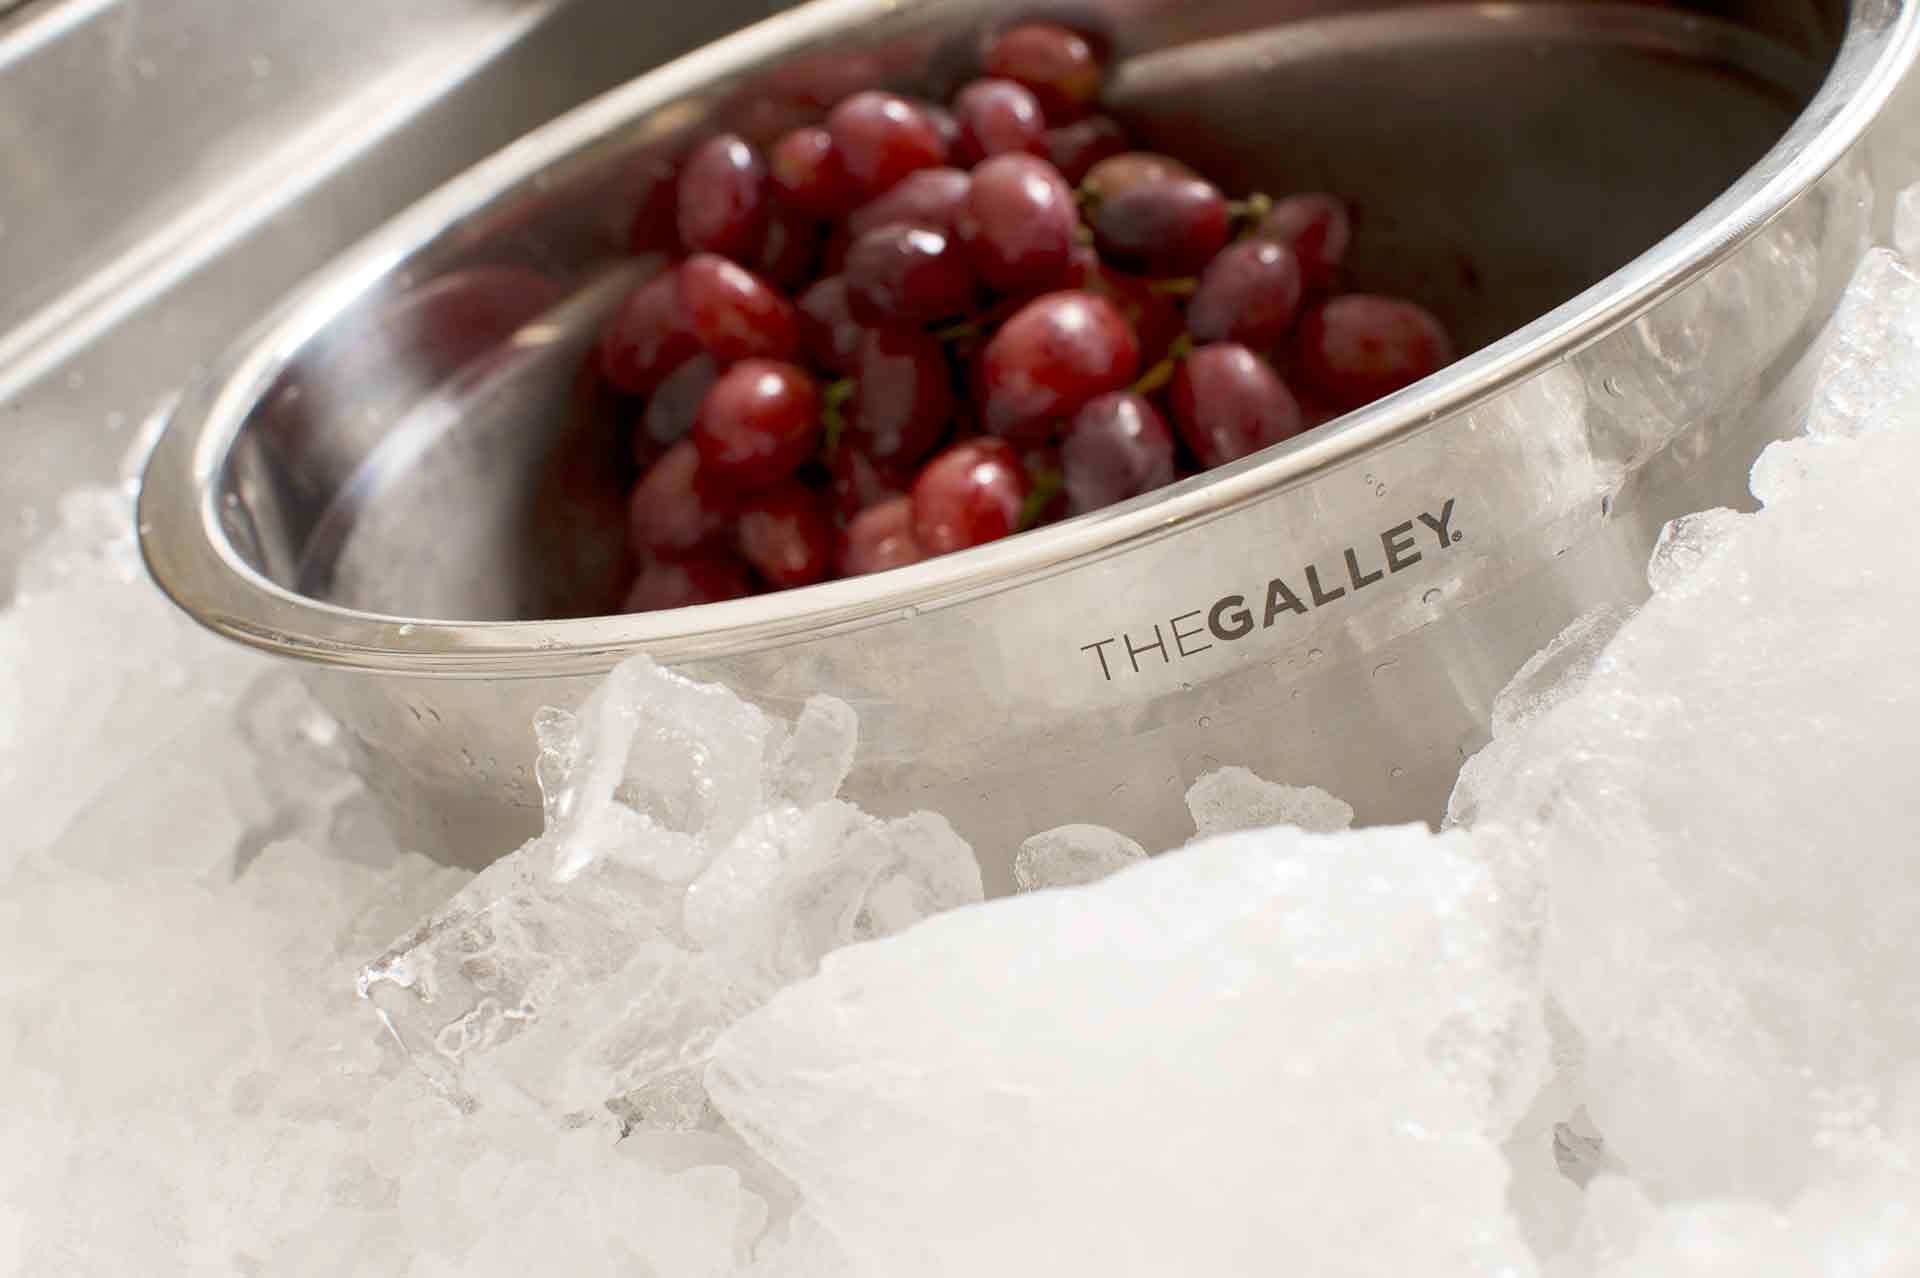 IWS-2-stainless-steel-prep-kitchen-sink-chilled-grapes.jpg